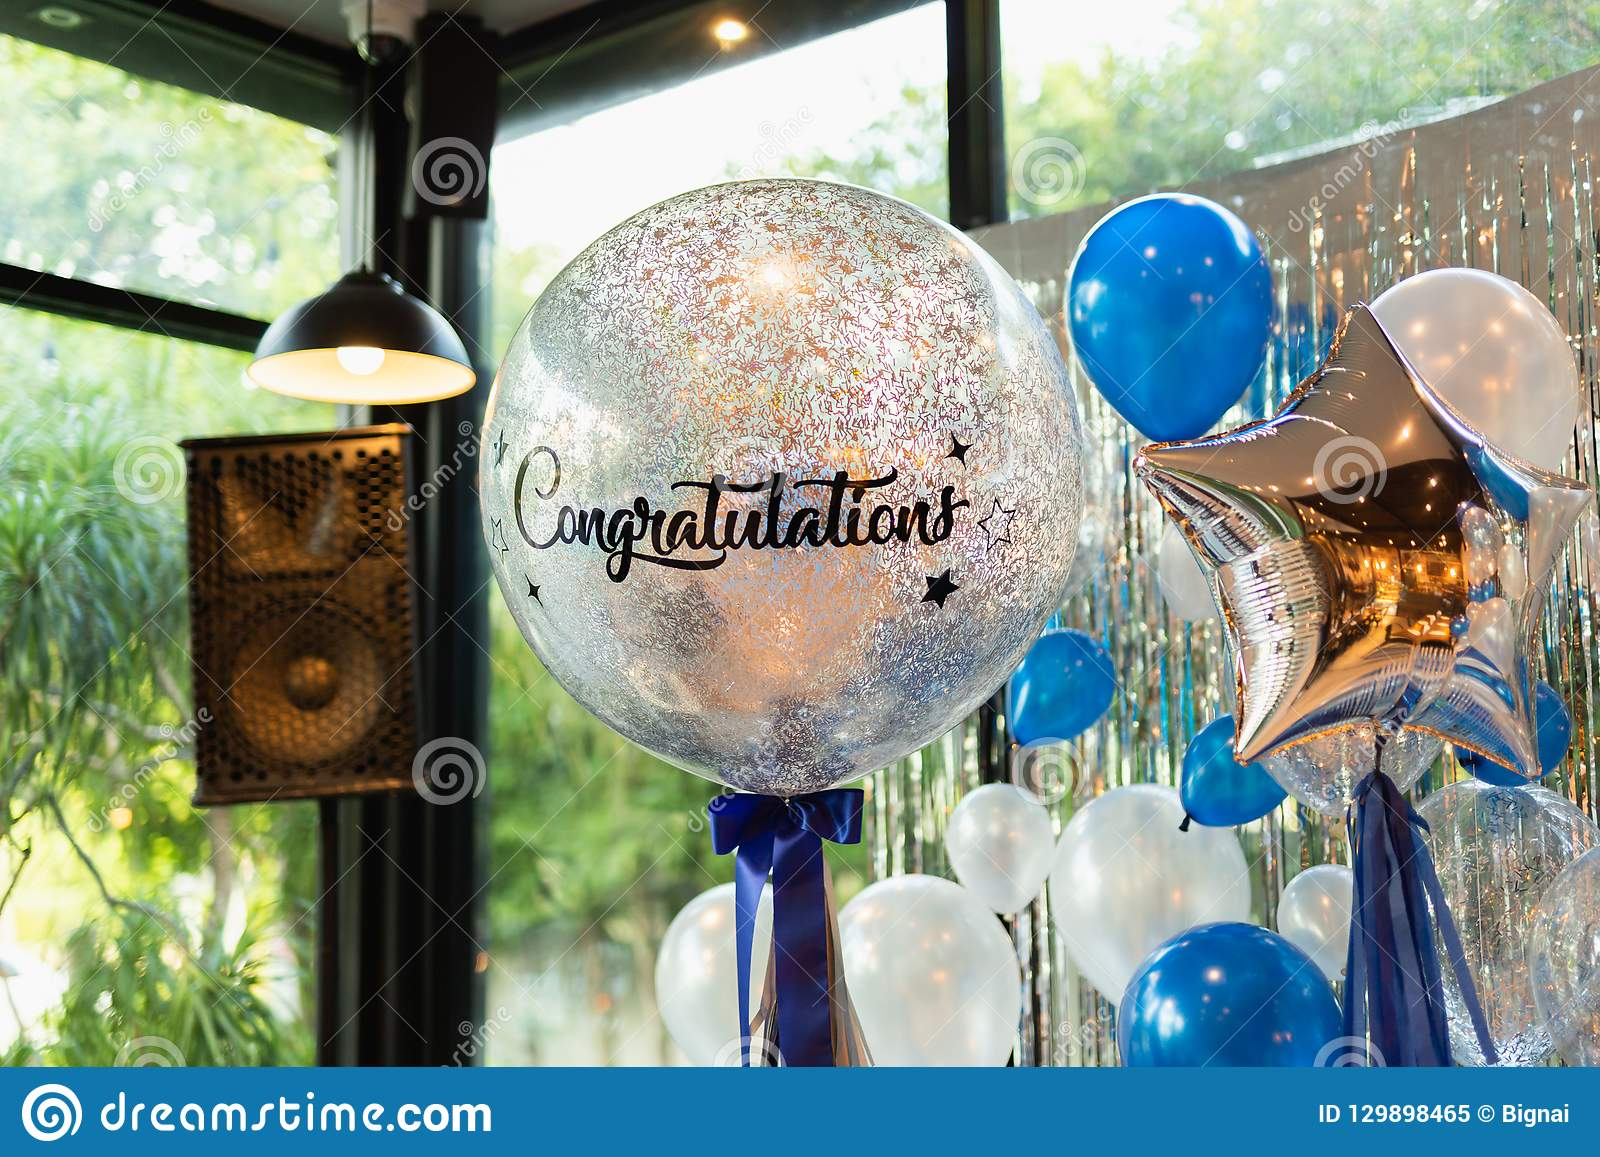 Decoration De Ballon Balloons With Word Congratulation On Ballon Decoration In The